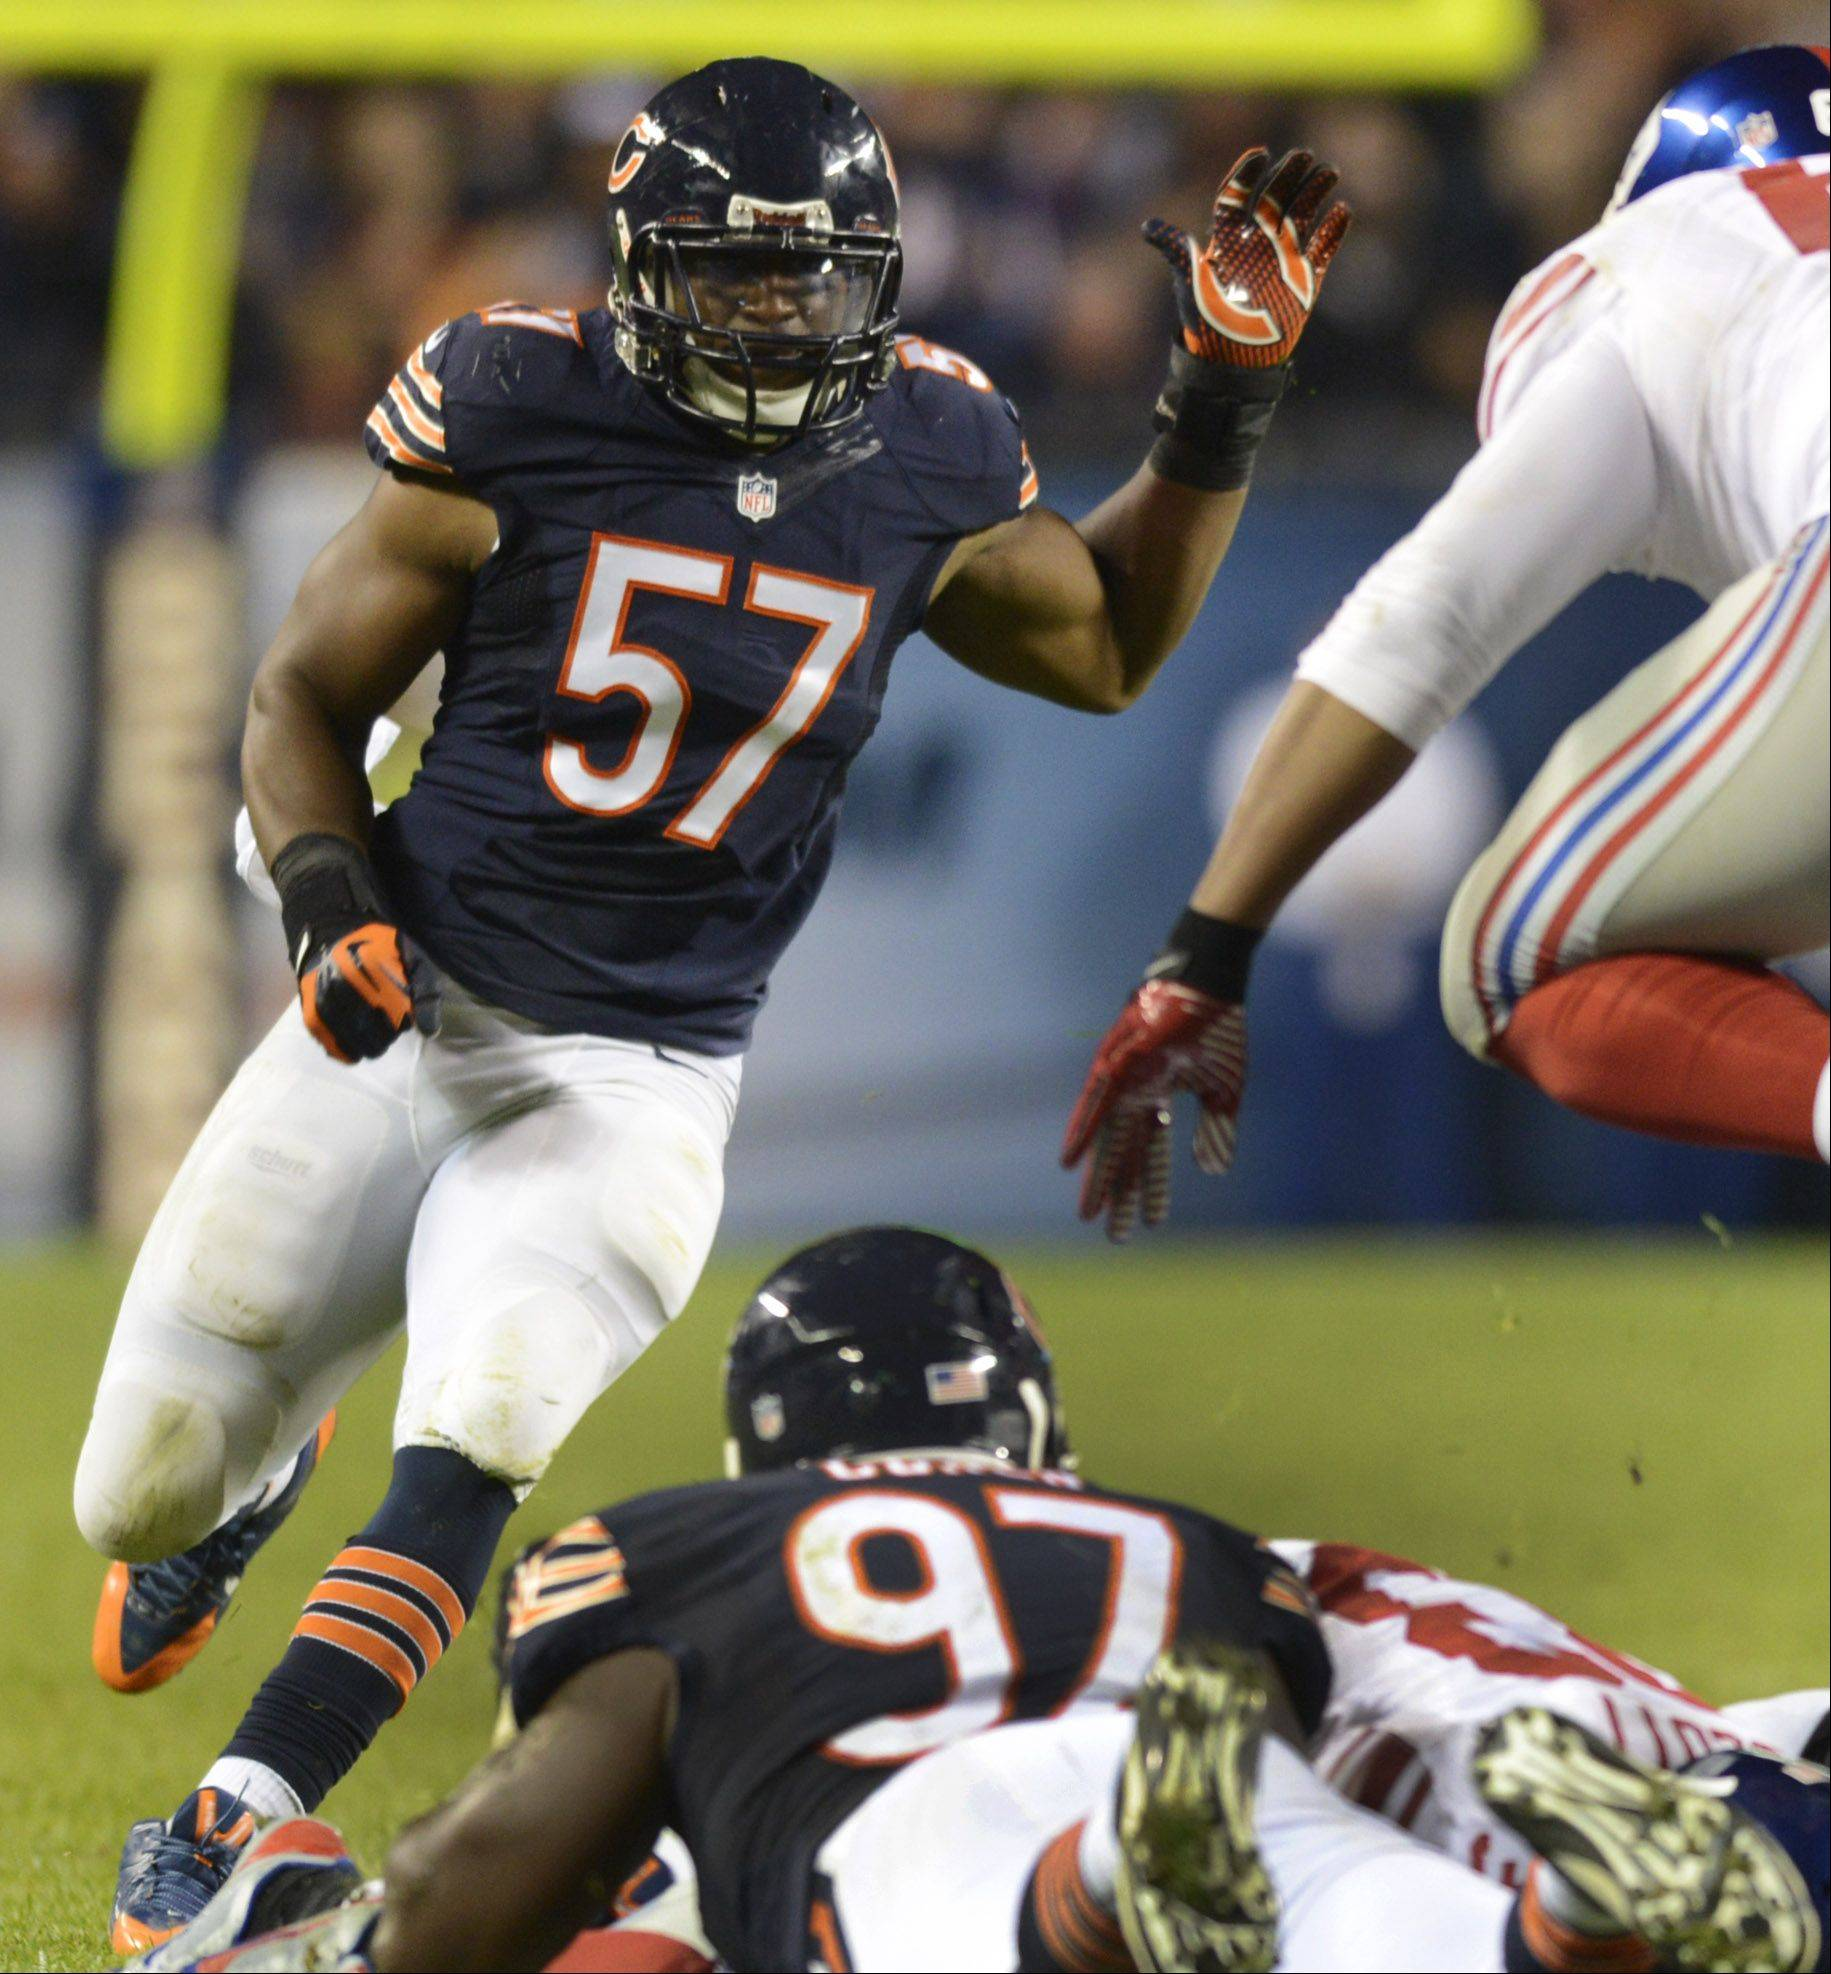 Bears inside linebacker Jon Bostic plays during Thursday's game against the New York Giants.